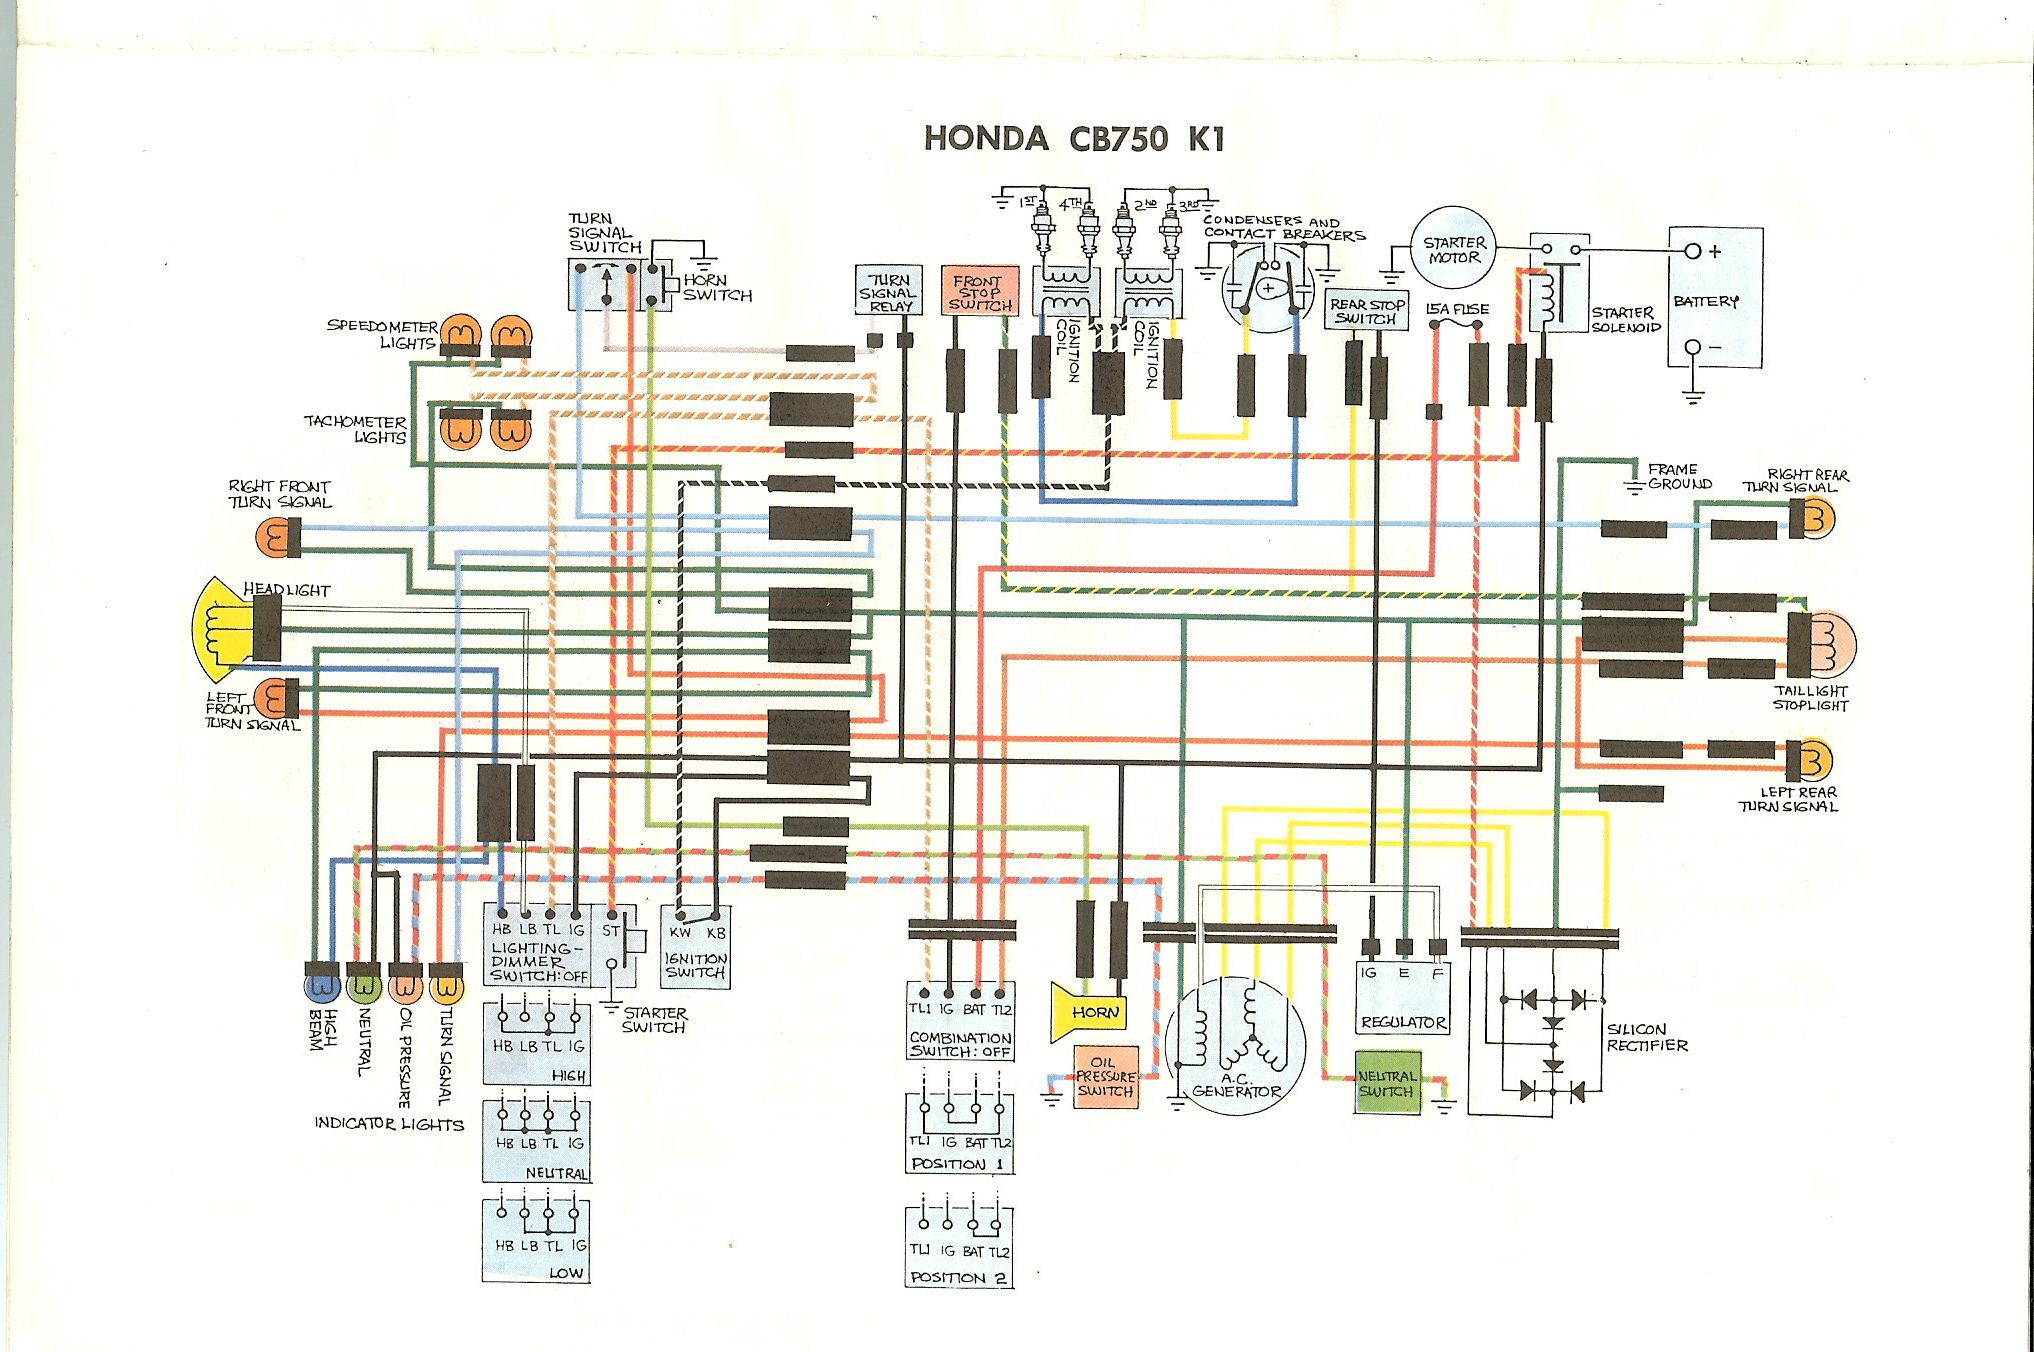 WD750K1?resize\=640%2C425 gl1000 wiring diagram 1979 honda goldwing cooling fan wiring Wiring-Diagram 1979 Honda CT90 at reclaimingppi.co